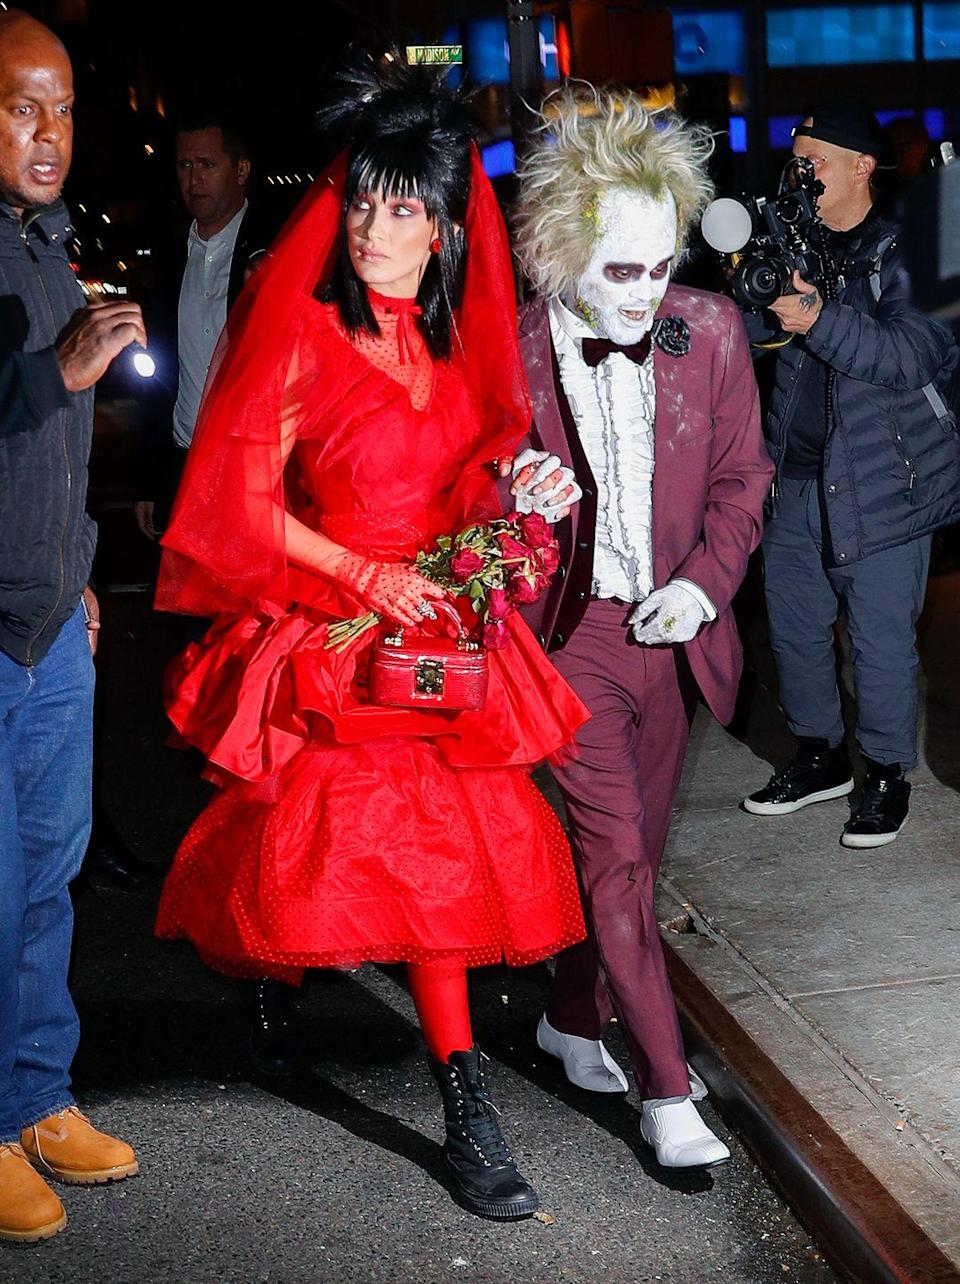 """<p>You can never go wrong with the original creepy king and queen of Halloween.</p><p><a class=""""link rapid-noclick-resp"""" href=""""https://www.amazon.com/Party-King-Womens-Beetle-Costume/dp/B01LZQILOW/?tag=syn-yahoo-20&ascsubtag=%5Bartid%7C10070.g.28669645%5Bsrc%7Cyahoo-us"""" rel=""""nofollow noopener"""" target=""""_blank"""" data-ylk=""""slk:Shop Women's Costume"""">Shop Women's Costume</a></p><p><a class=""""link rapid-noclick-resp"""" href=""""https://www.amazon.com/Beetlejuice-Deluxe-Costume-Black-X-Large/dp/B001ILW4M2/?tag=syn-yahoo-20&ascsubtag=%5Bartid%7C10070.g.28669645%5Bsrc%7Cyahoo-us"""" rel=""""nofollow noopener"""" target=""""_blank"""" data-ylk=""""slk:Shop Men's Costume"""">Shop Men's Costume</a> </p>"""